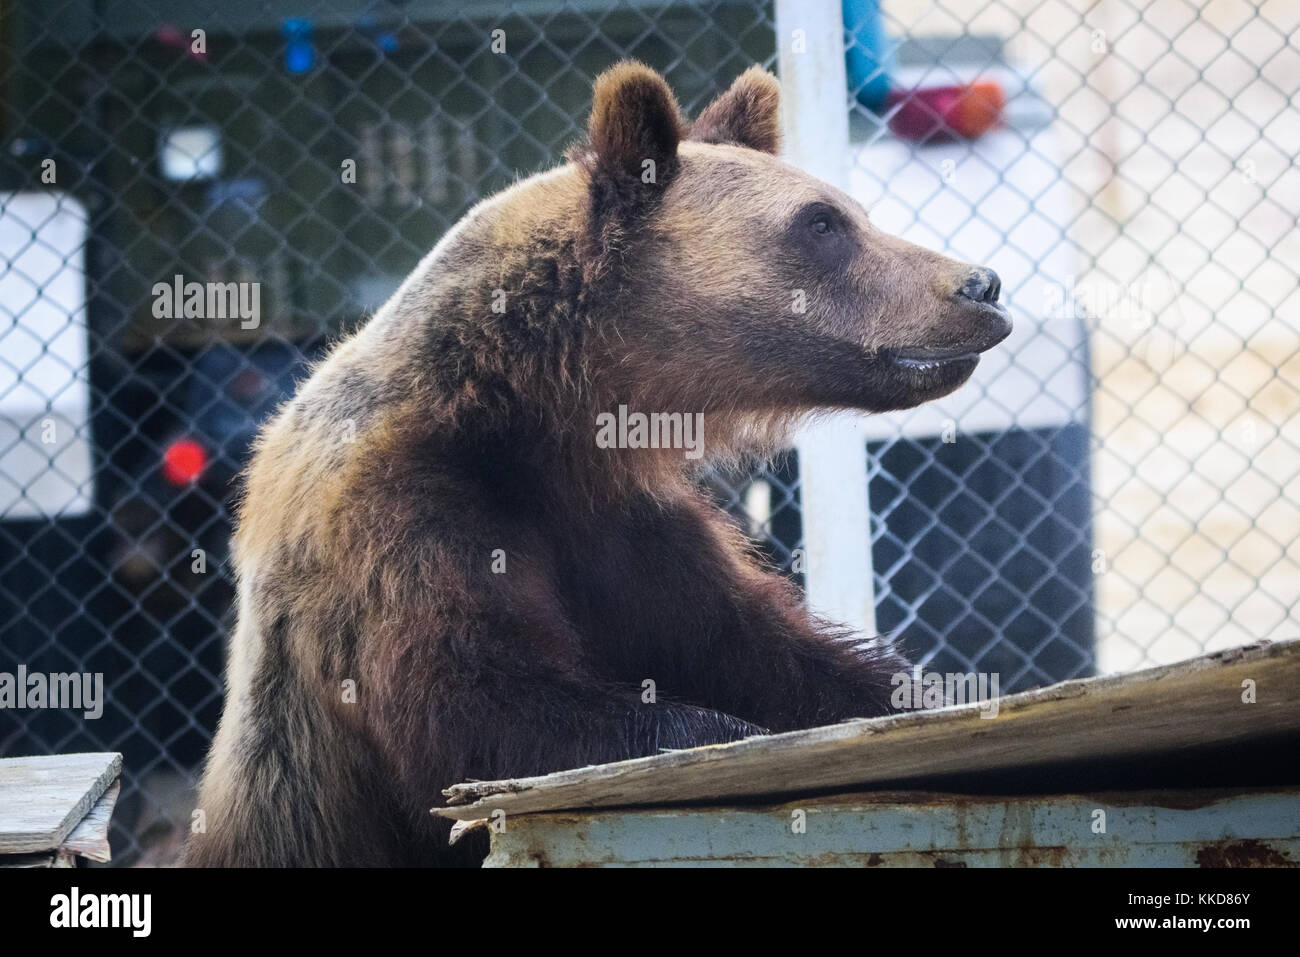 The Bear Eats Out Of Trash Can Territory C In Stock Photo 166863632 Alamy